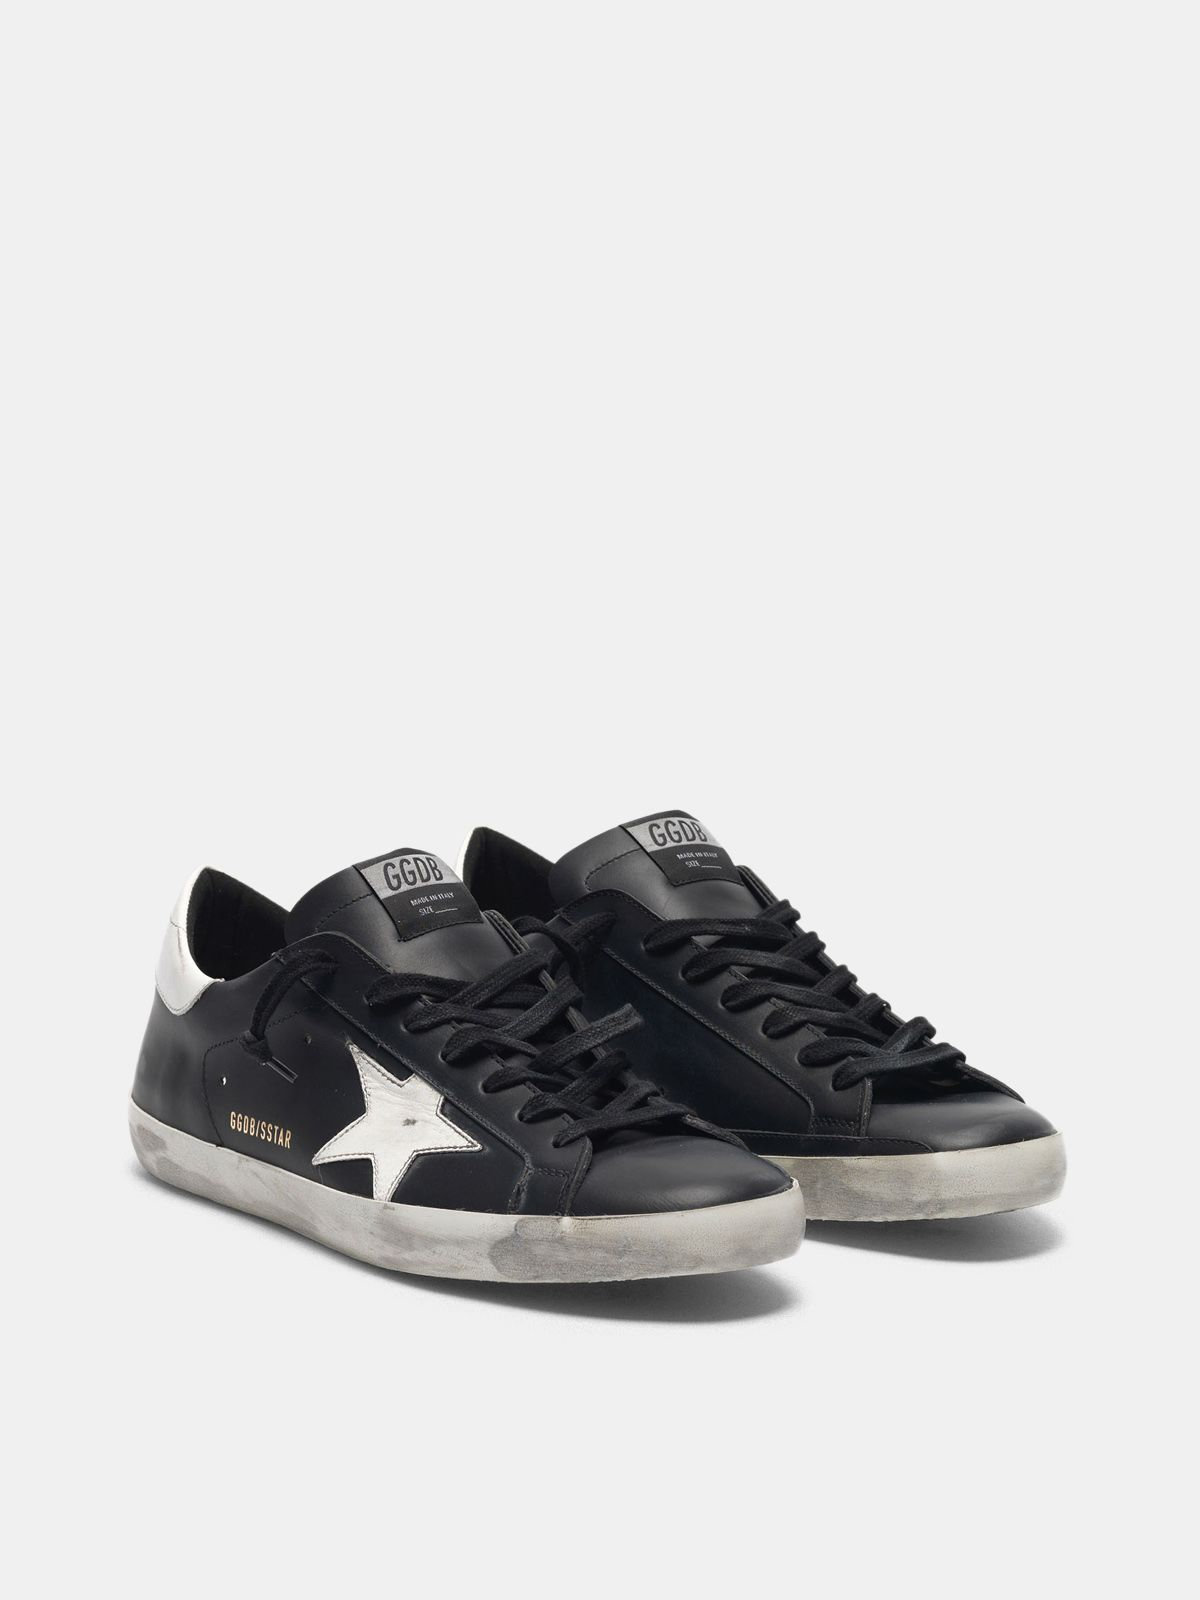 Golden Goose - Sneakers Super-Star nere in pelle con stella bianca in